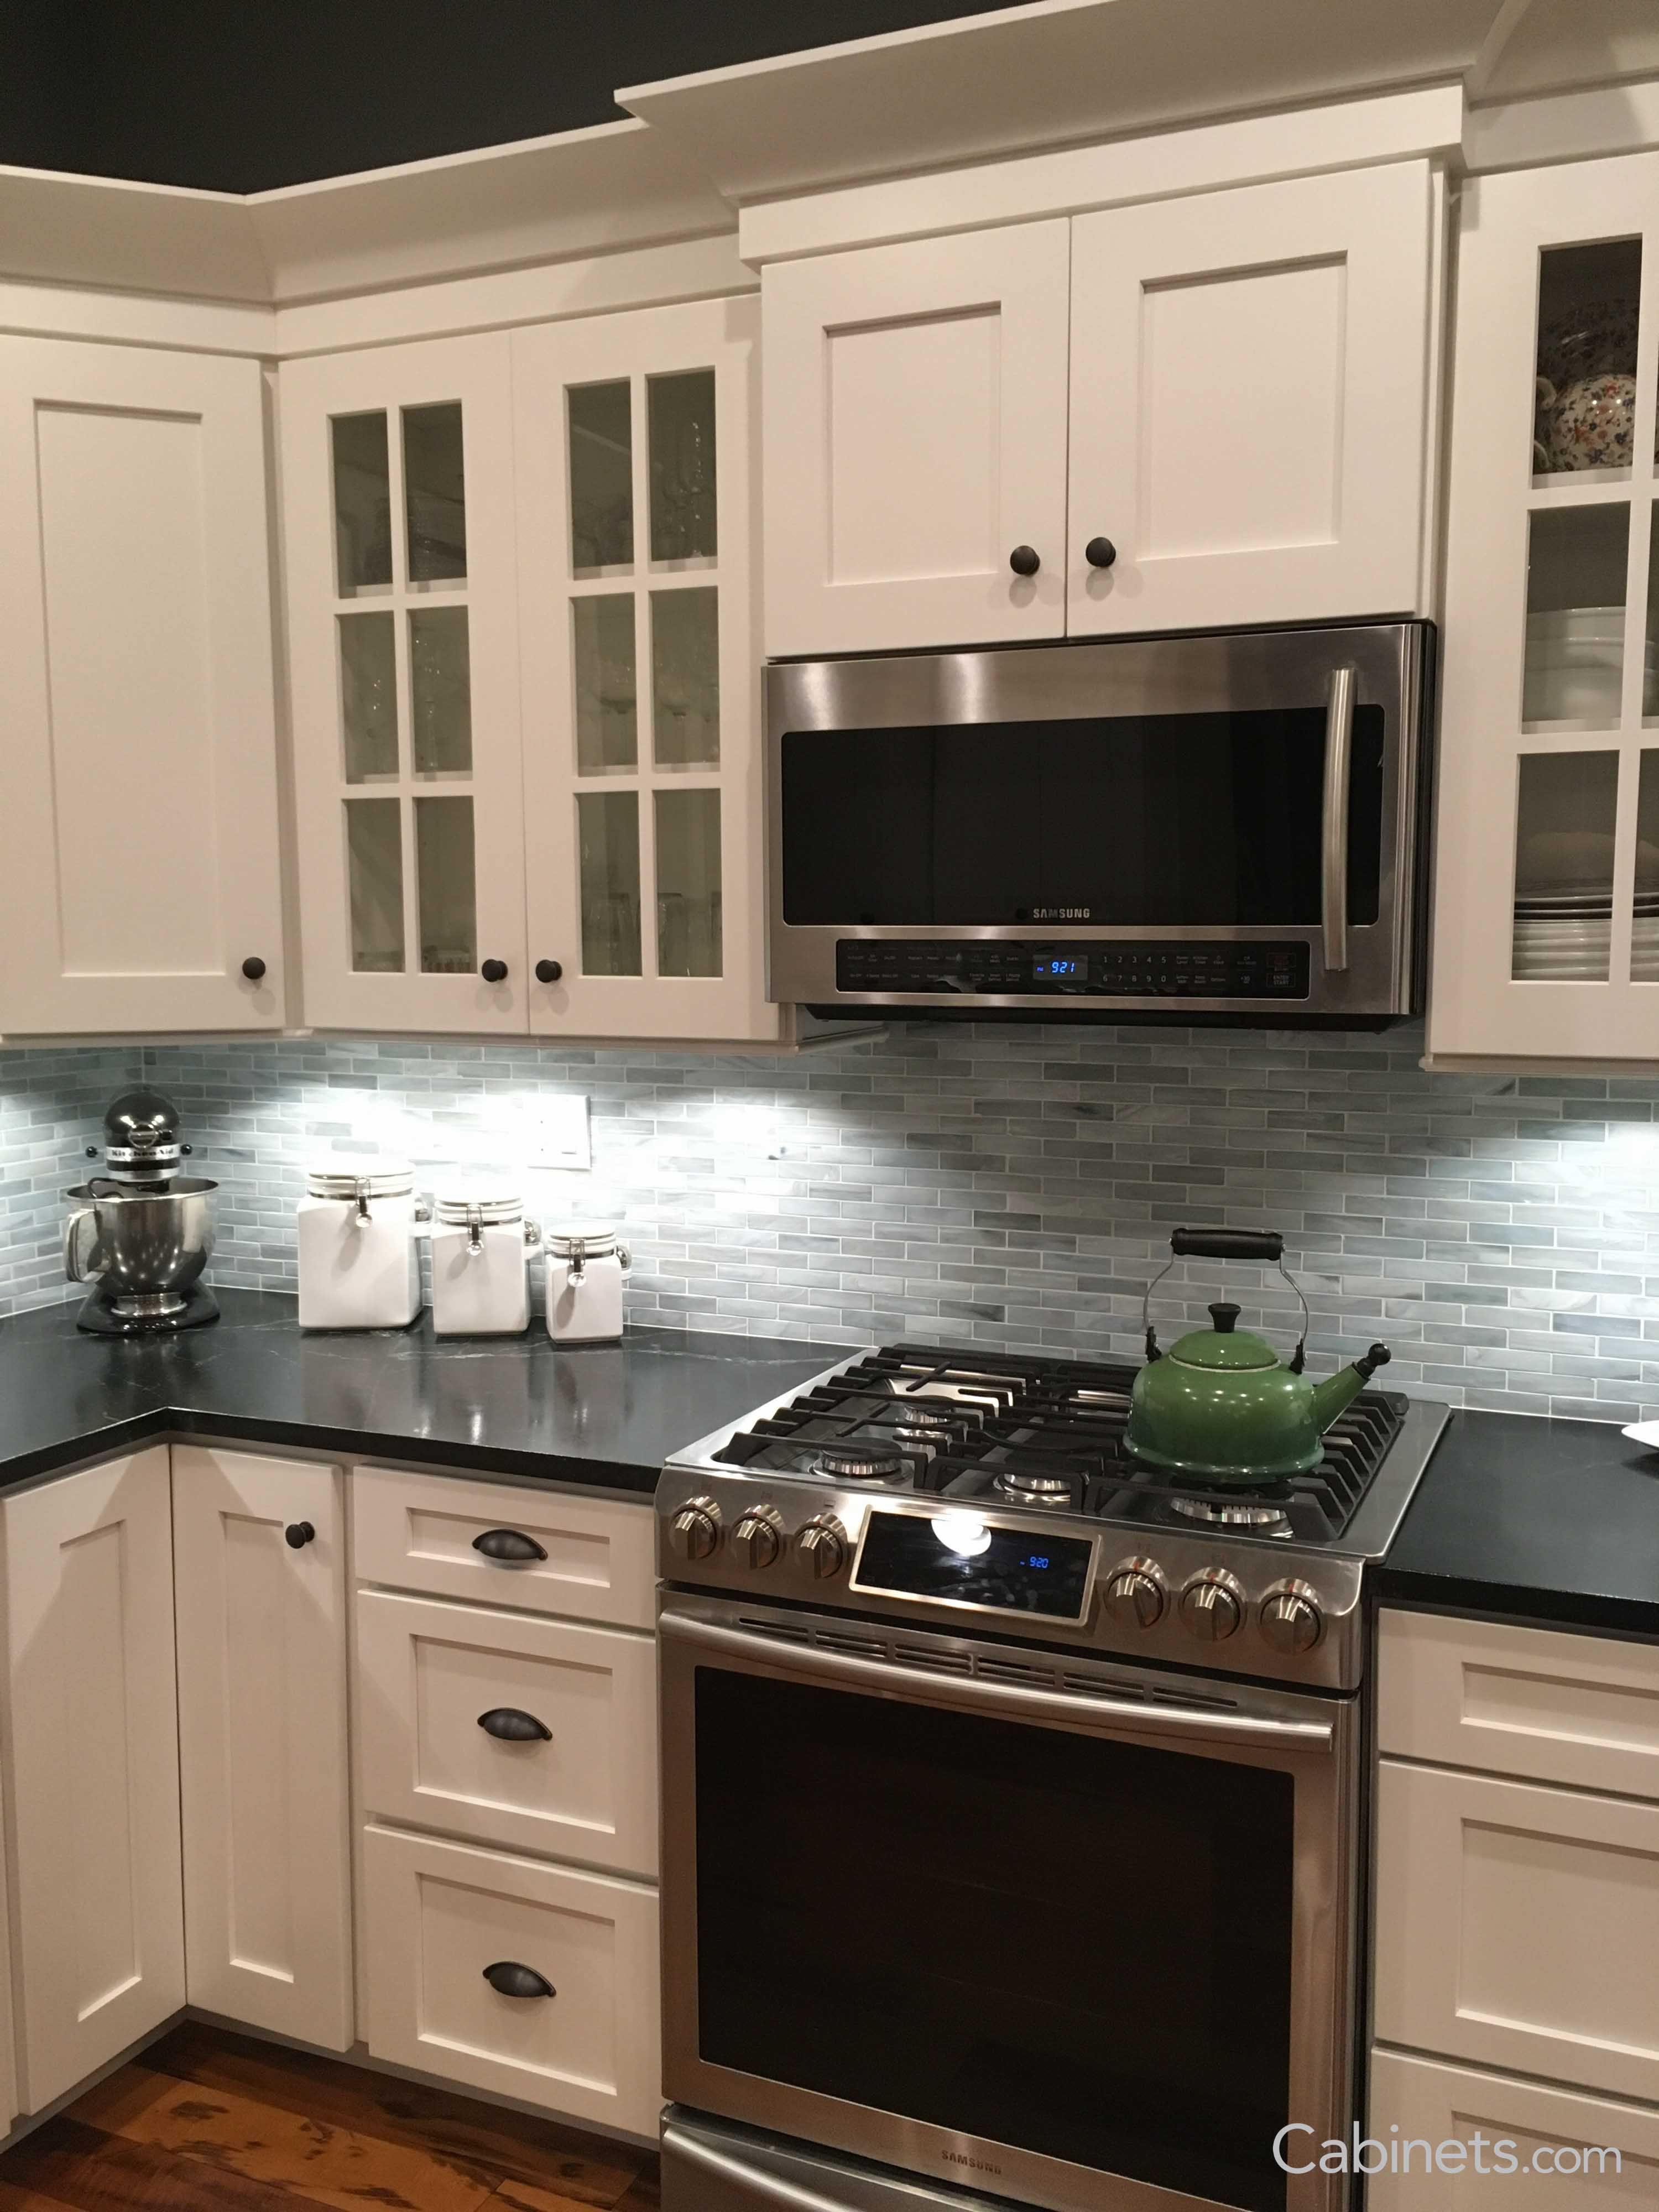 The picture features Shaker II Maple Bright White Cabinets